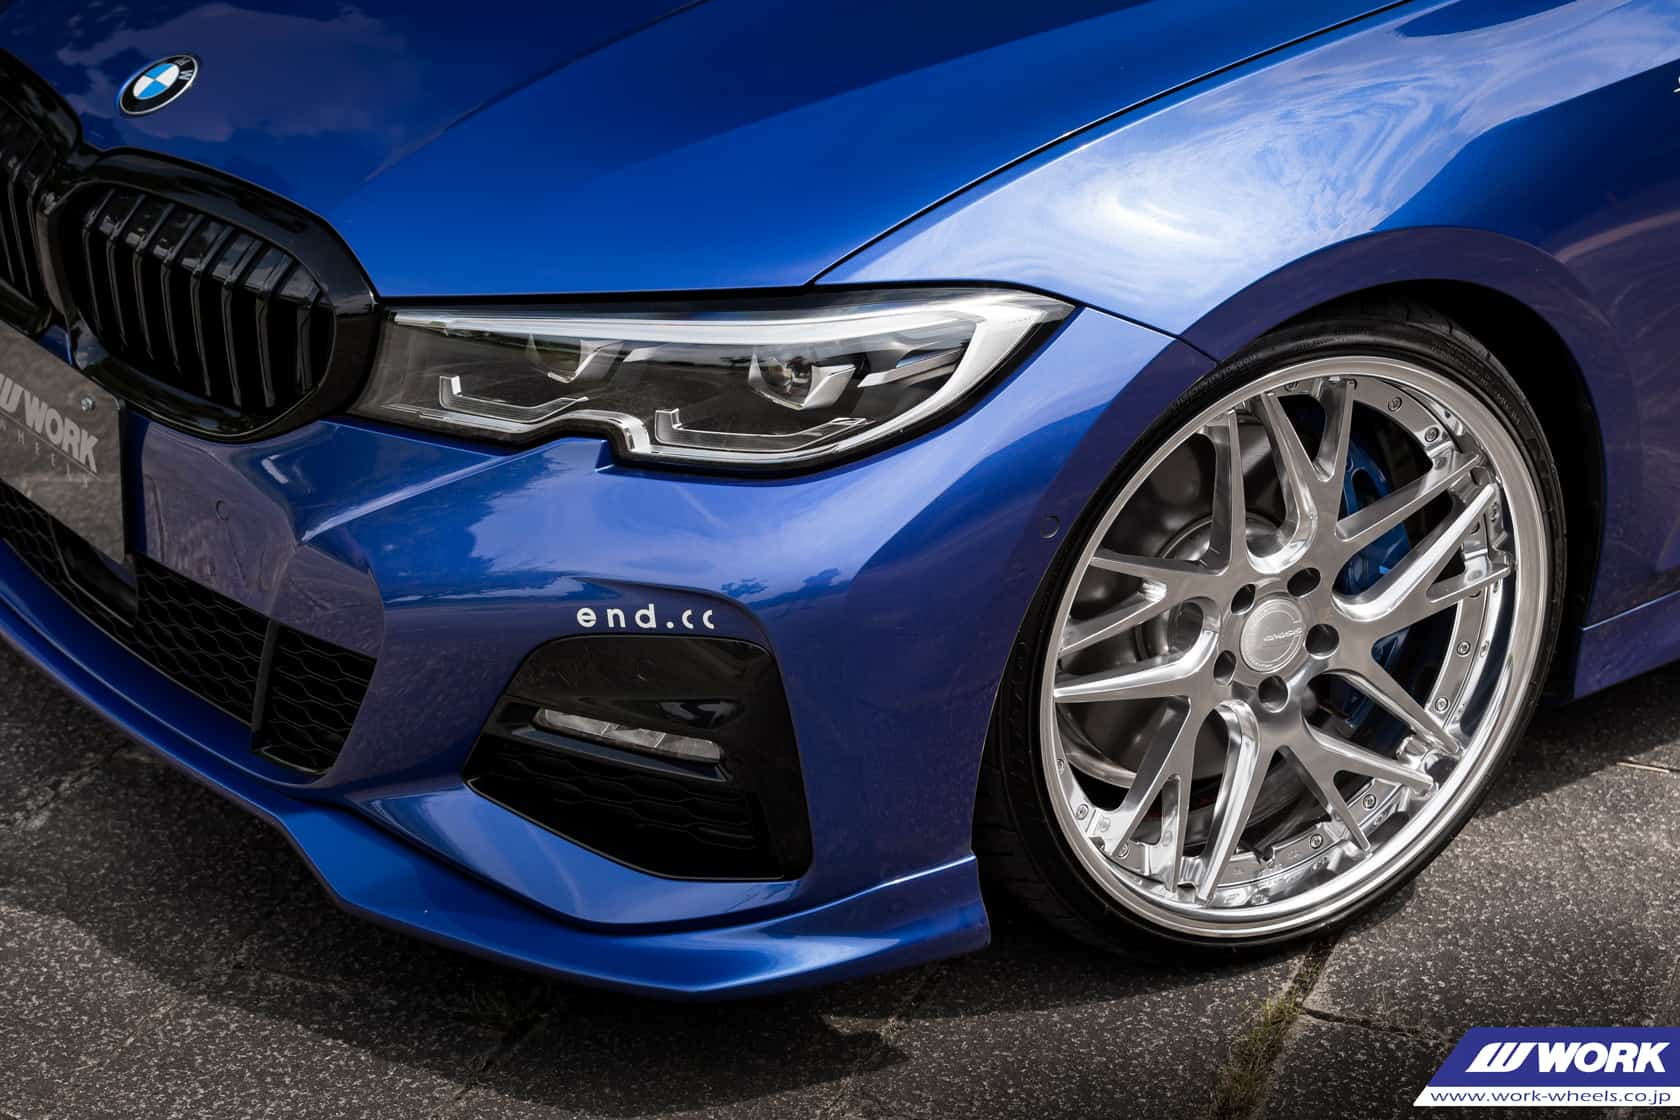 BMW 3 G20 With WORK Wheels And End.cc Aero Kit